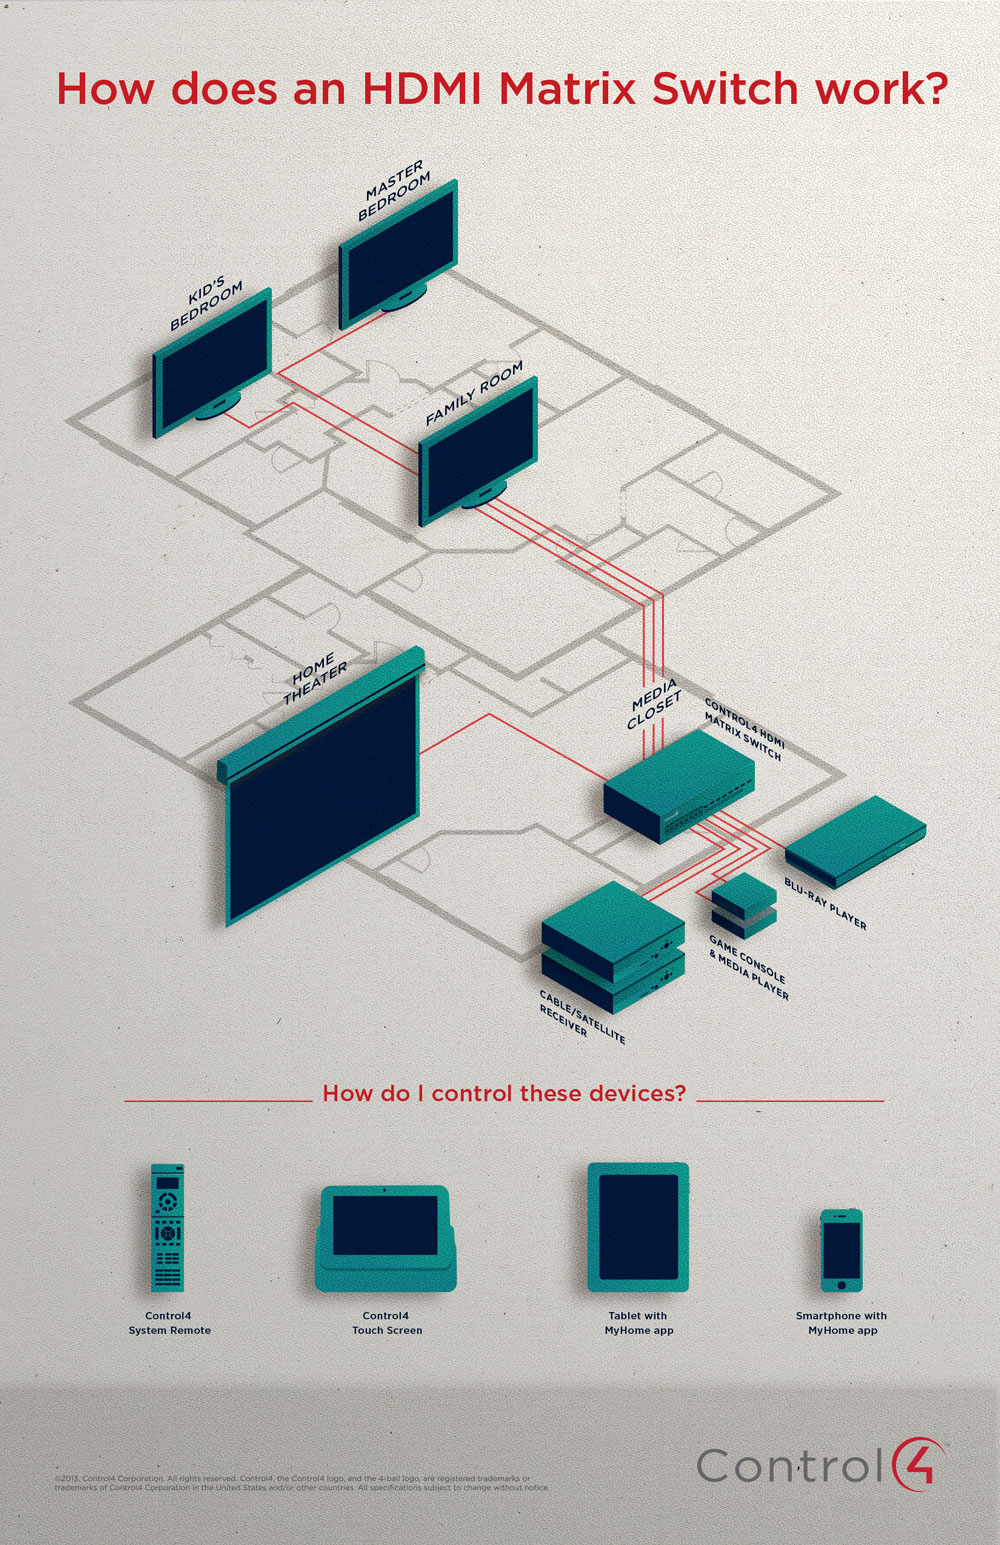 How Does a Control4 HDMI Matrix Switch Work? [INFOGRAPHIC